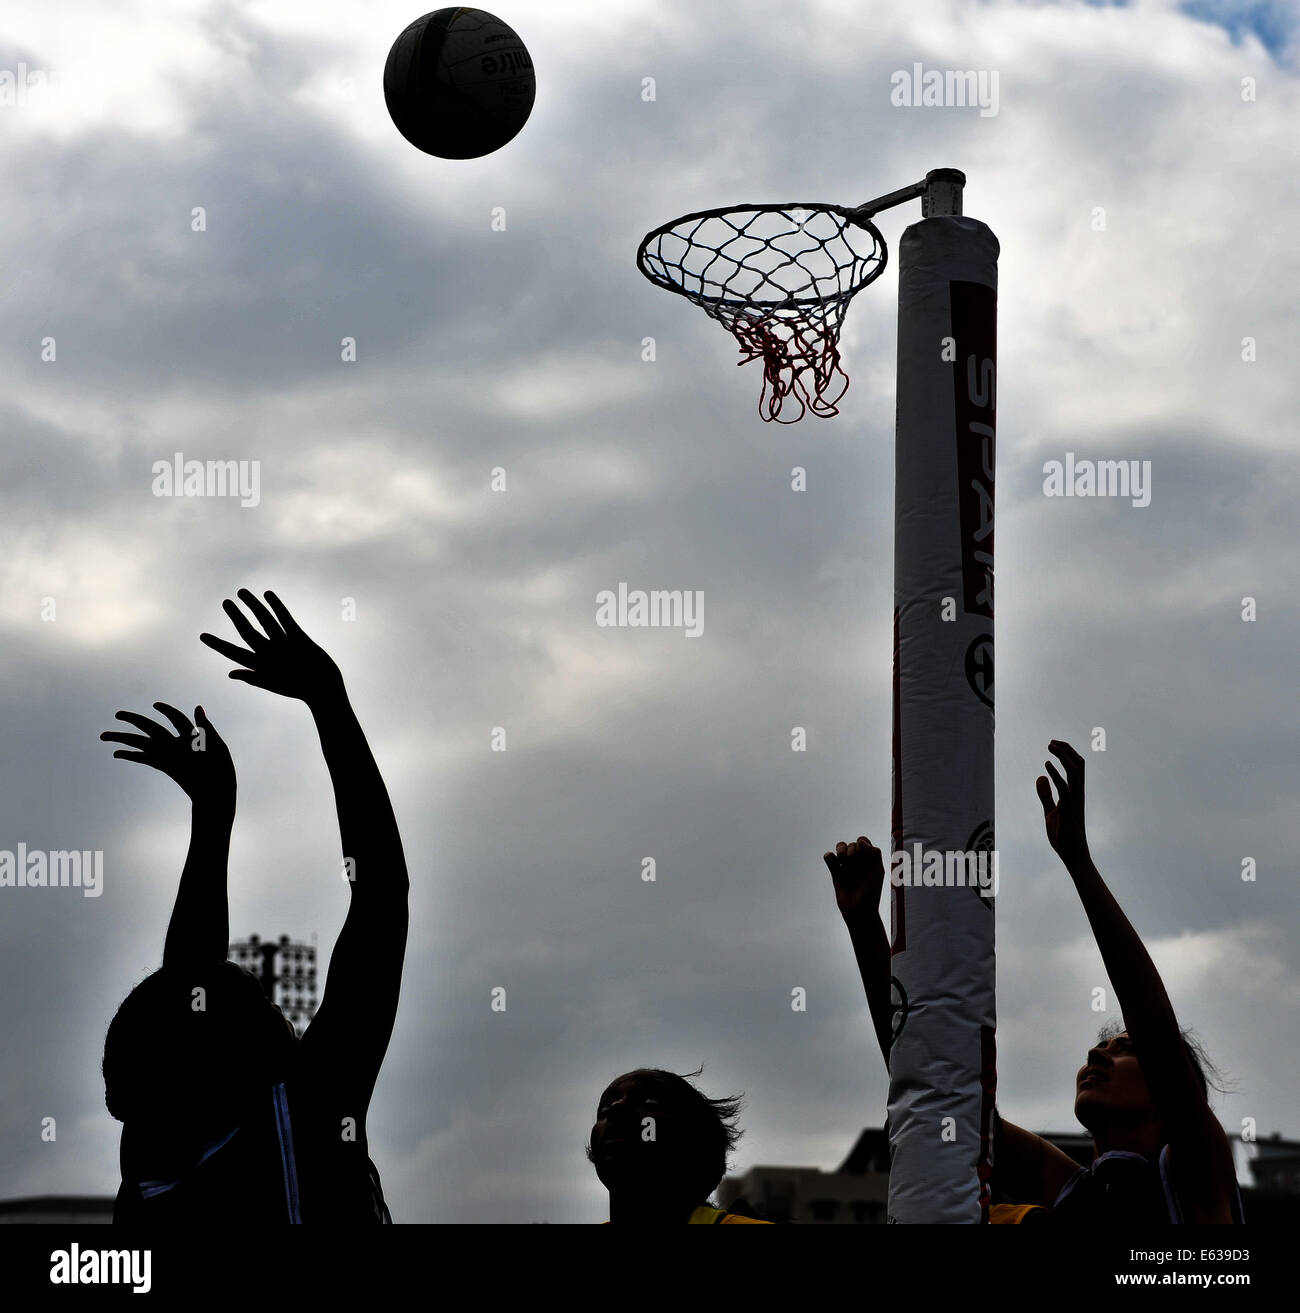 Cape Town, South Africa. 13th Aug, 2014. players are silhouetted against the grey sky during the Spar Women's - Stock Image